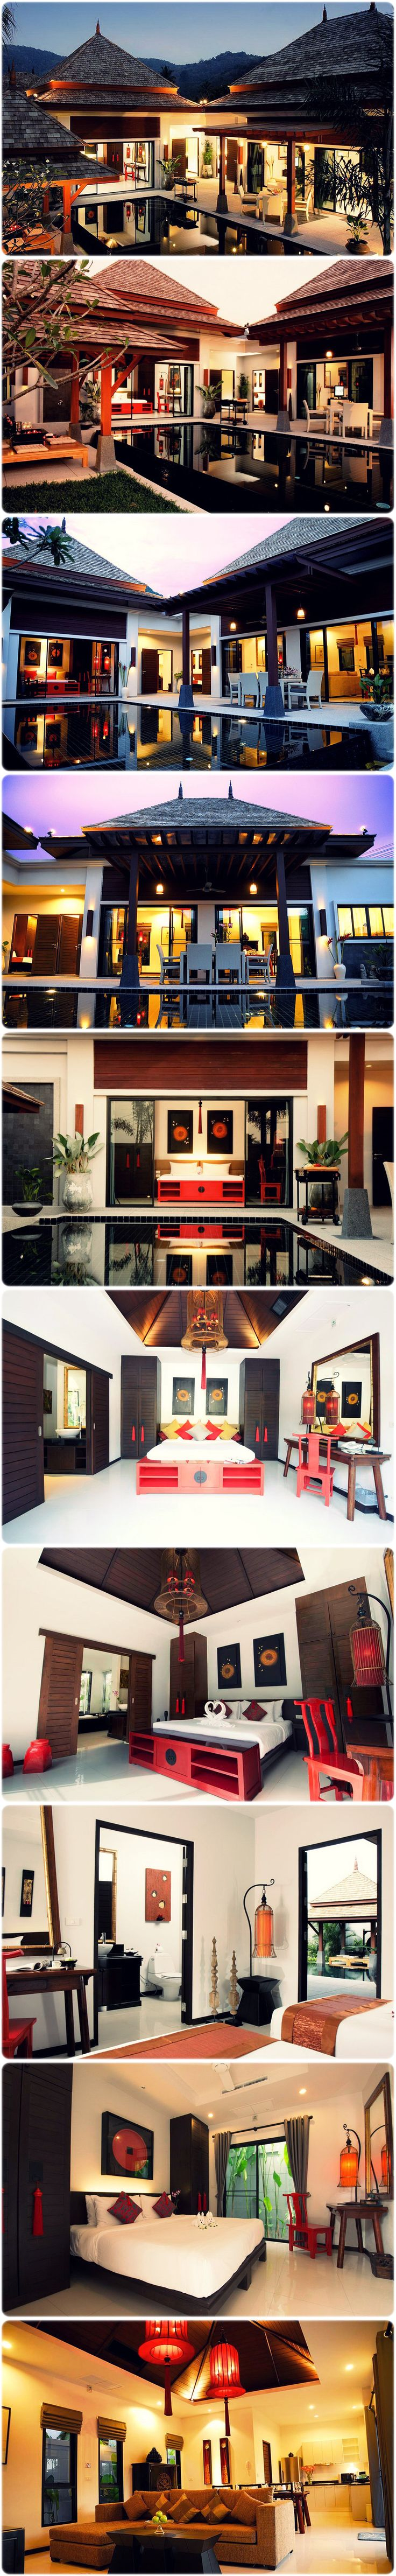 """The Bell Pool Villa Resort Hotel, Phuket! >>> http://www.otel.com/hotels/the_bell_pool_villa_resort_hotel_phuket.htm?sm=pinterest  Use the code """"UPYRPW15"""" while making your reservation on otel.com, get 10% #discount"""